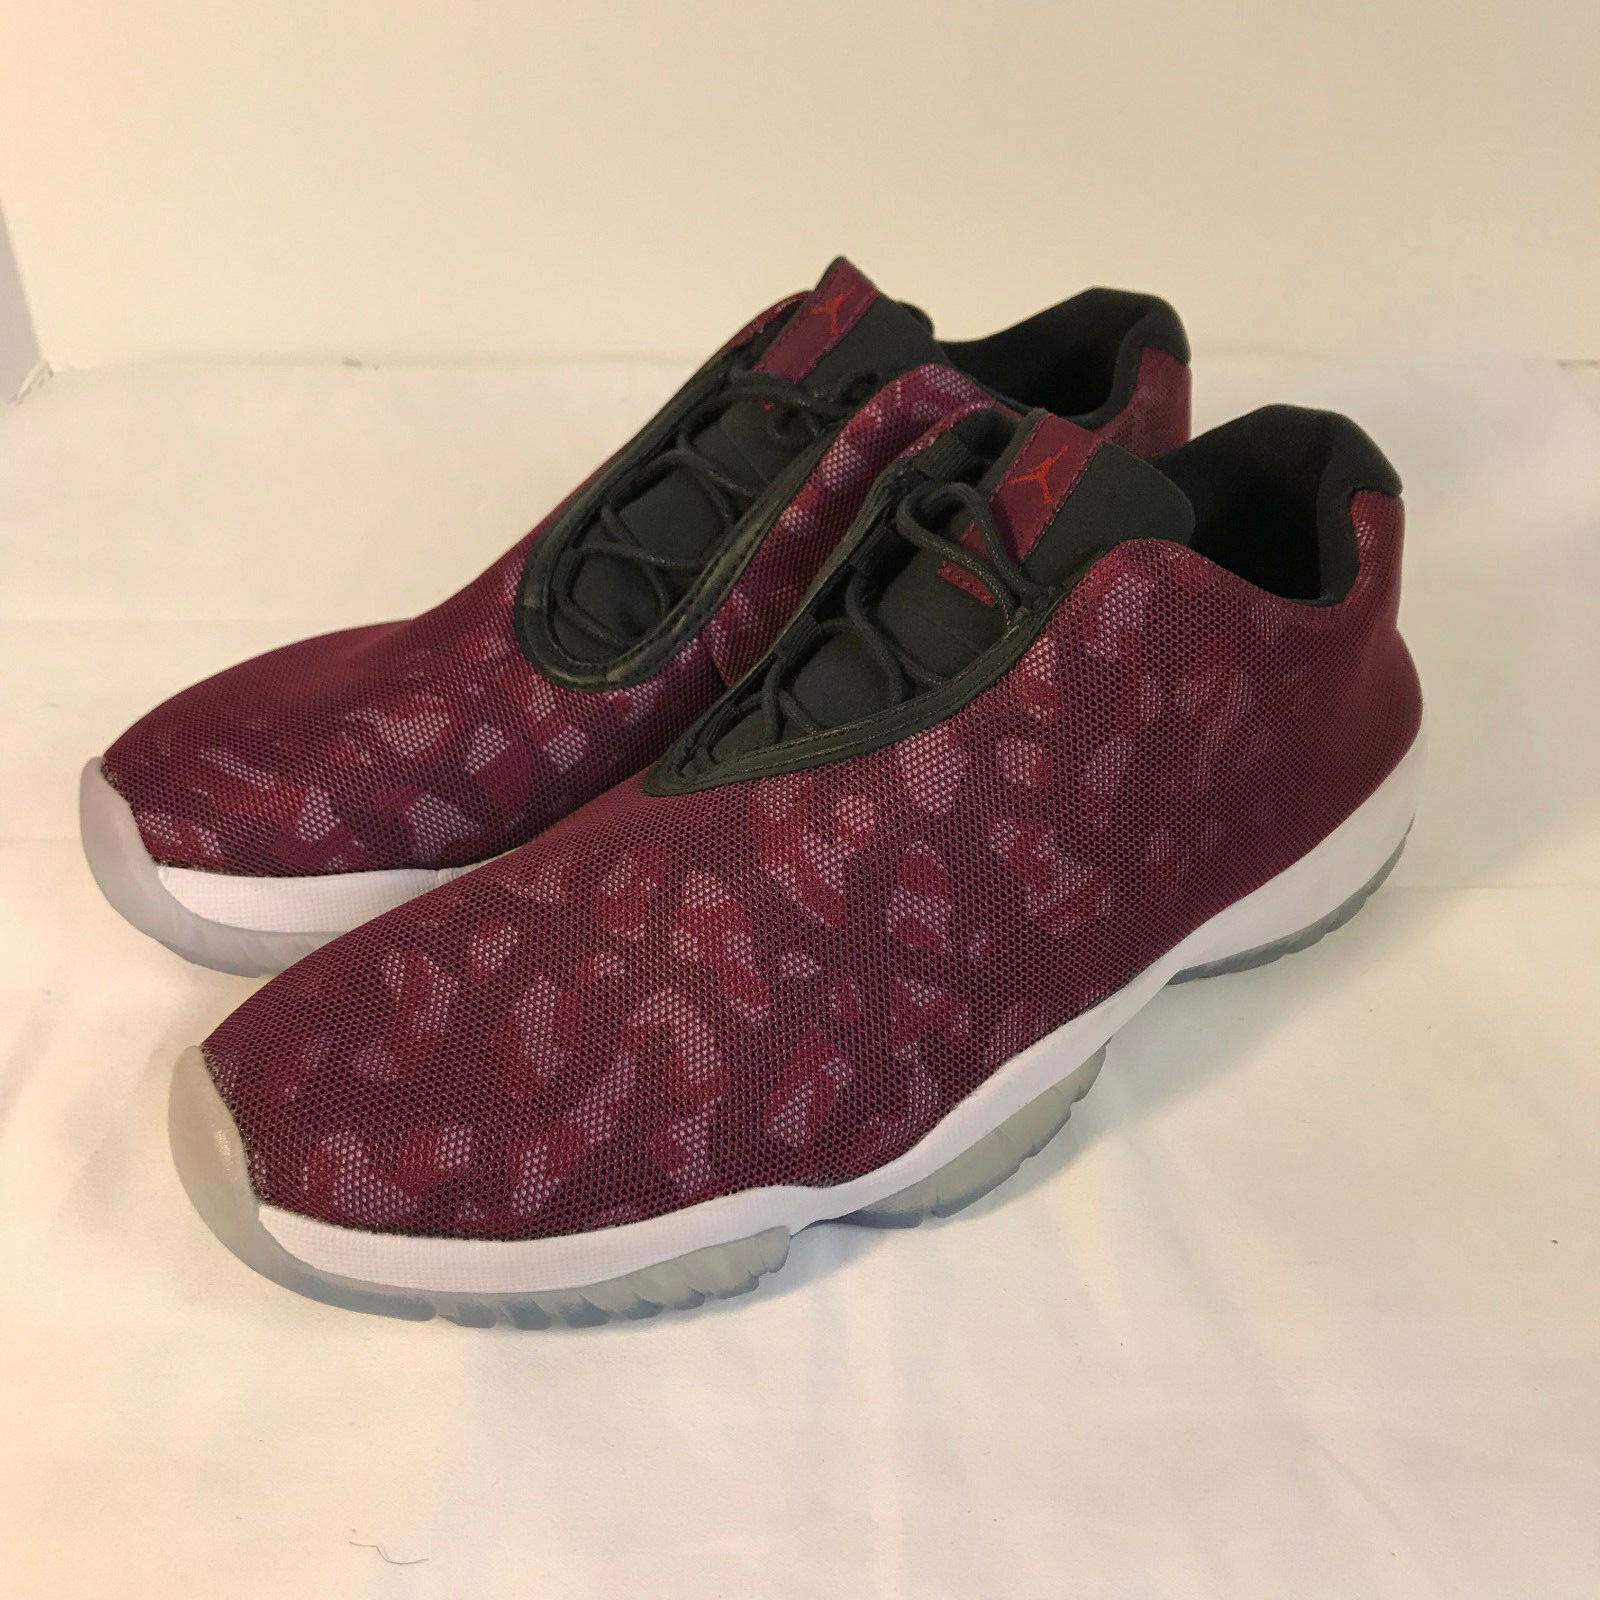 Nike Red Air Jordan Future Low Bordeaux Black Gym Red Nike size 10 style 718948-605 863f9d